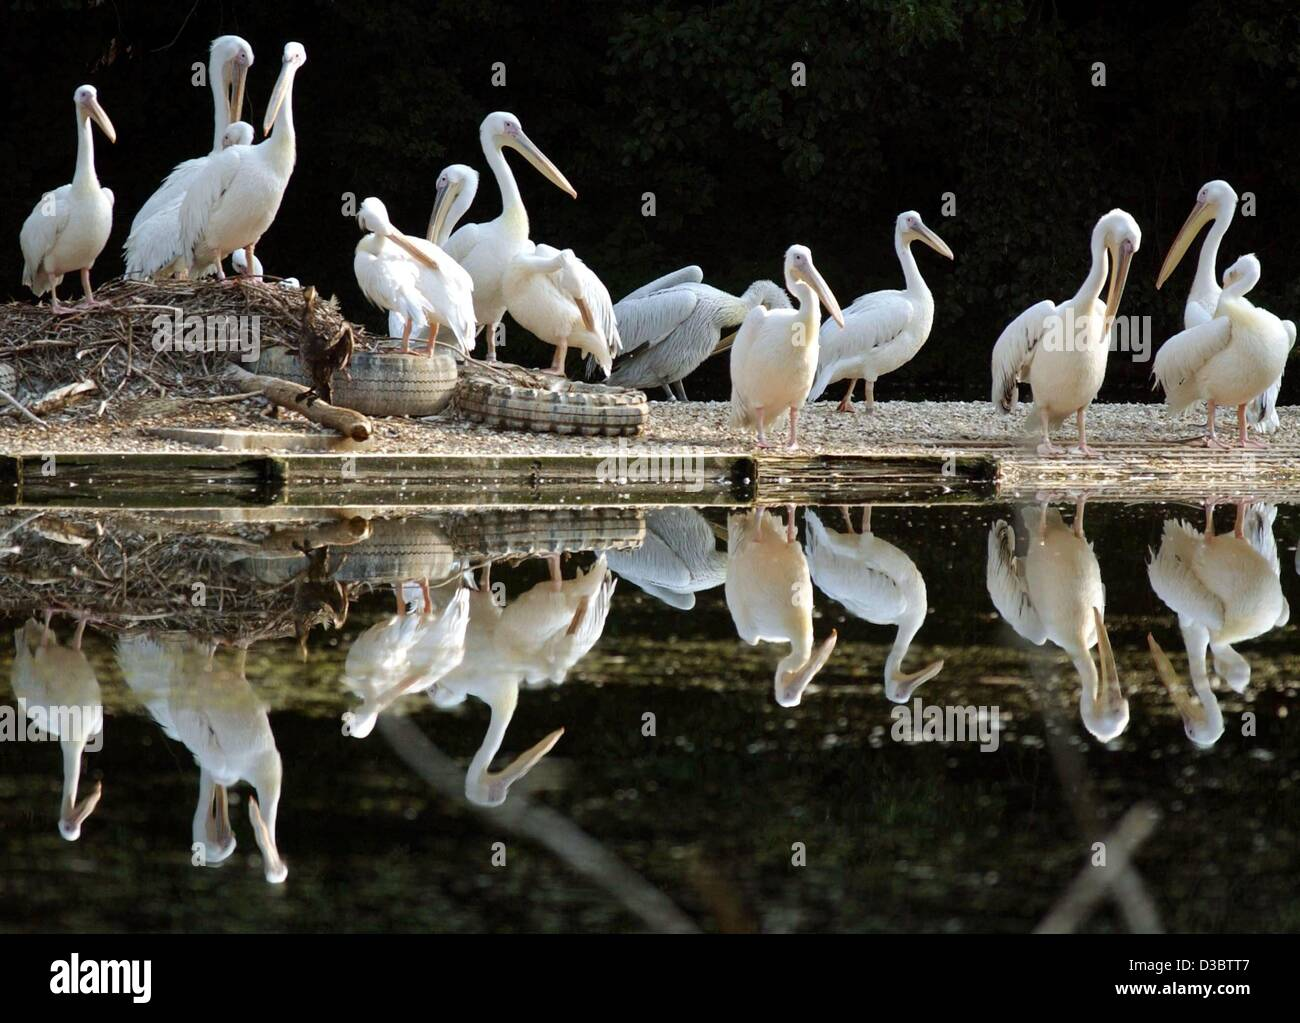 (dpa) - A flog of pelicans stand next to a pond in their enclosure and await their feeding early in the morning - Stock Image